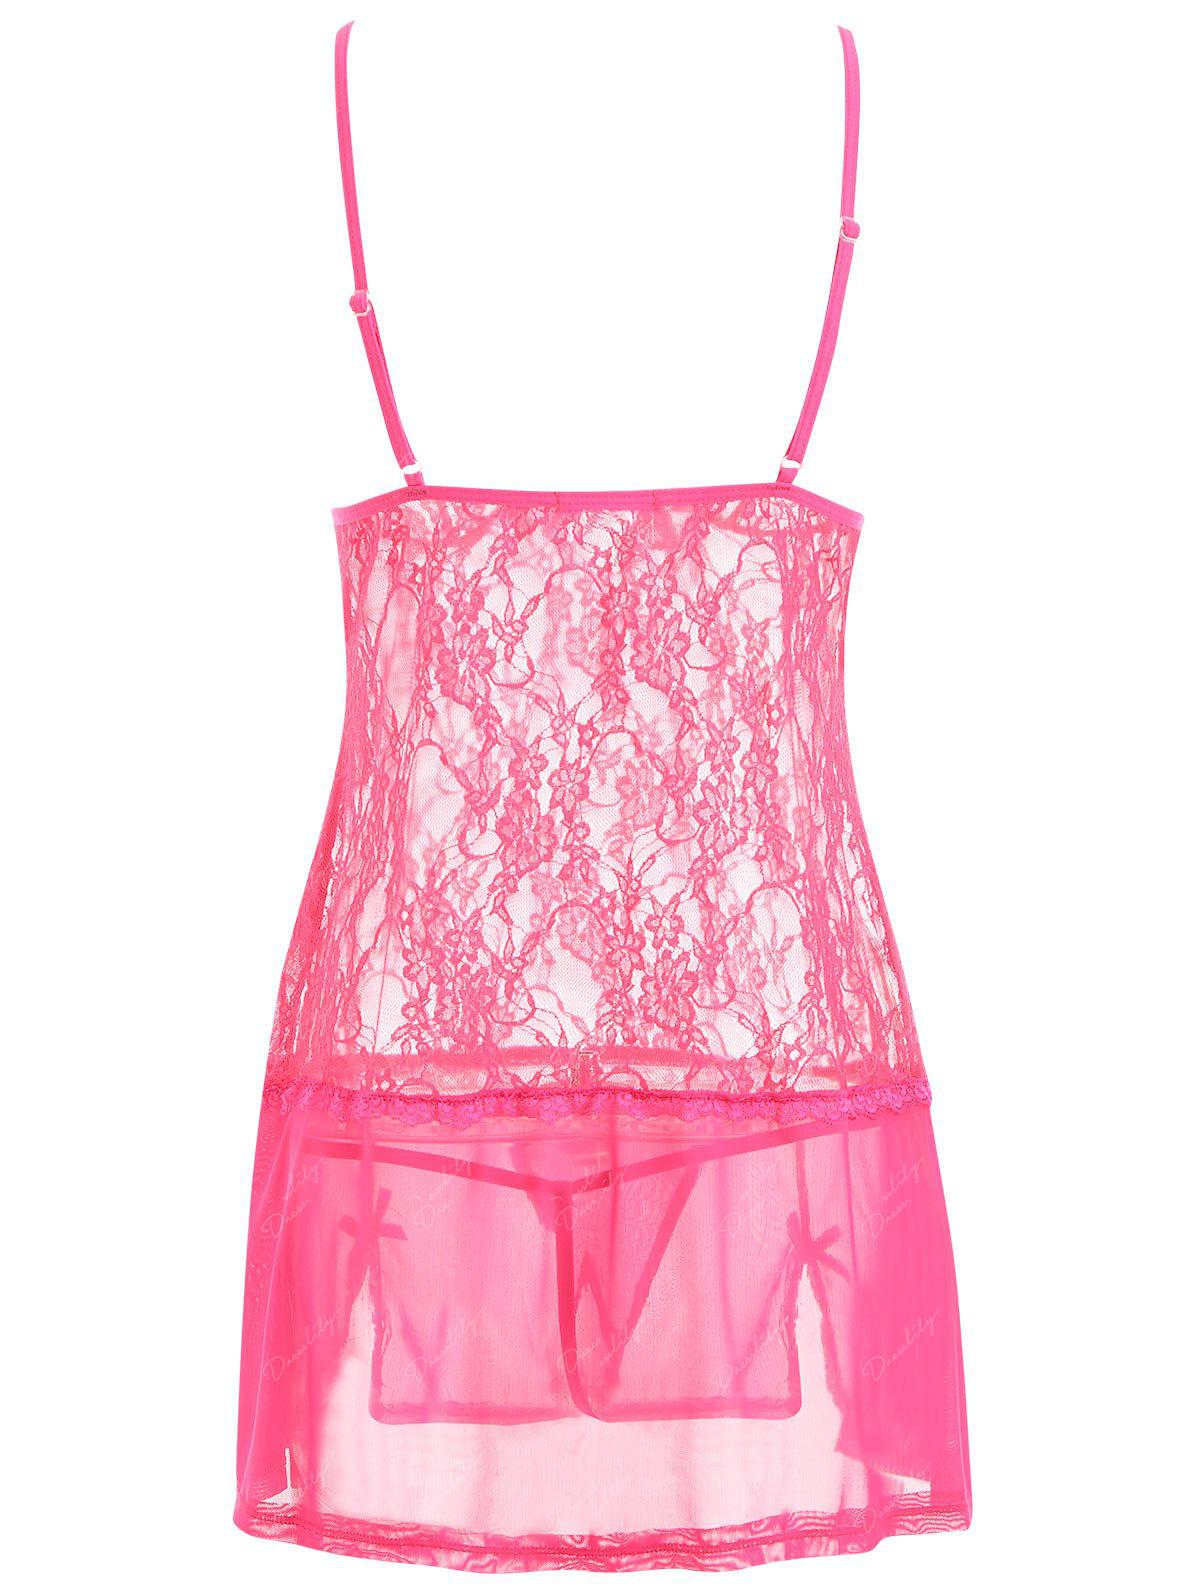 Lace Slip See Thru Lingerie Babydoll - ROSE RED S